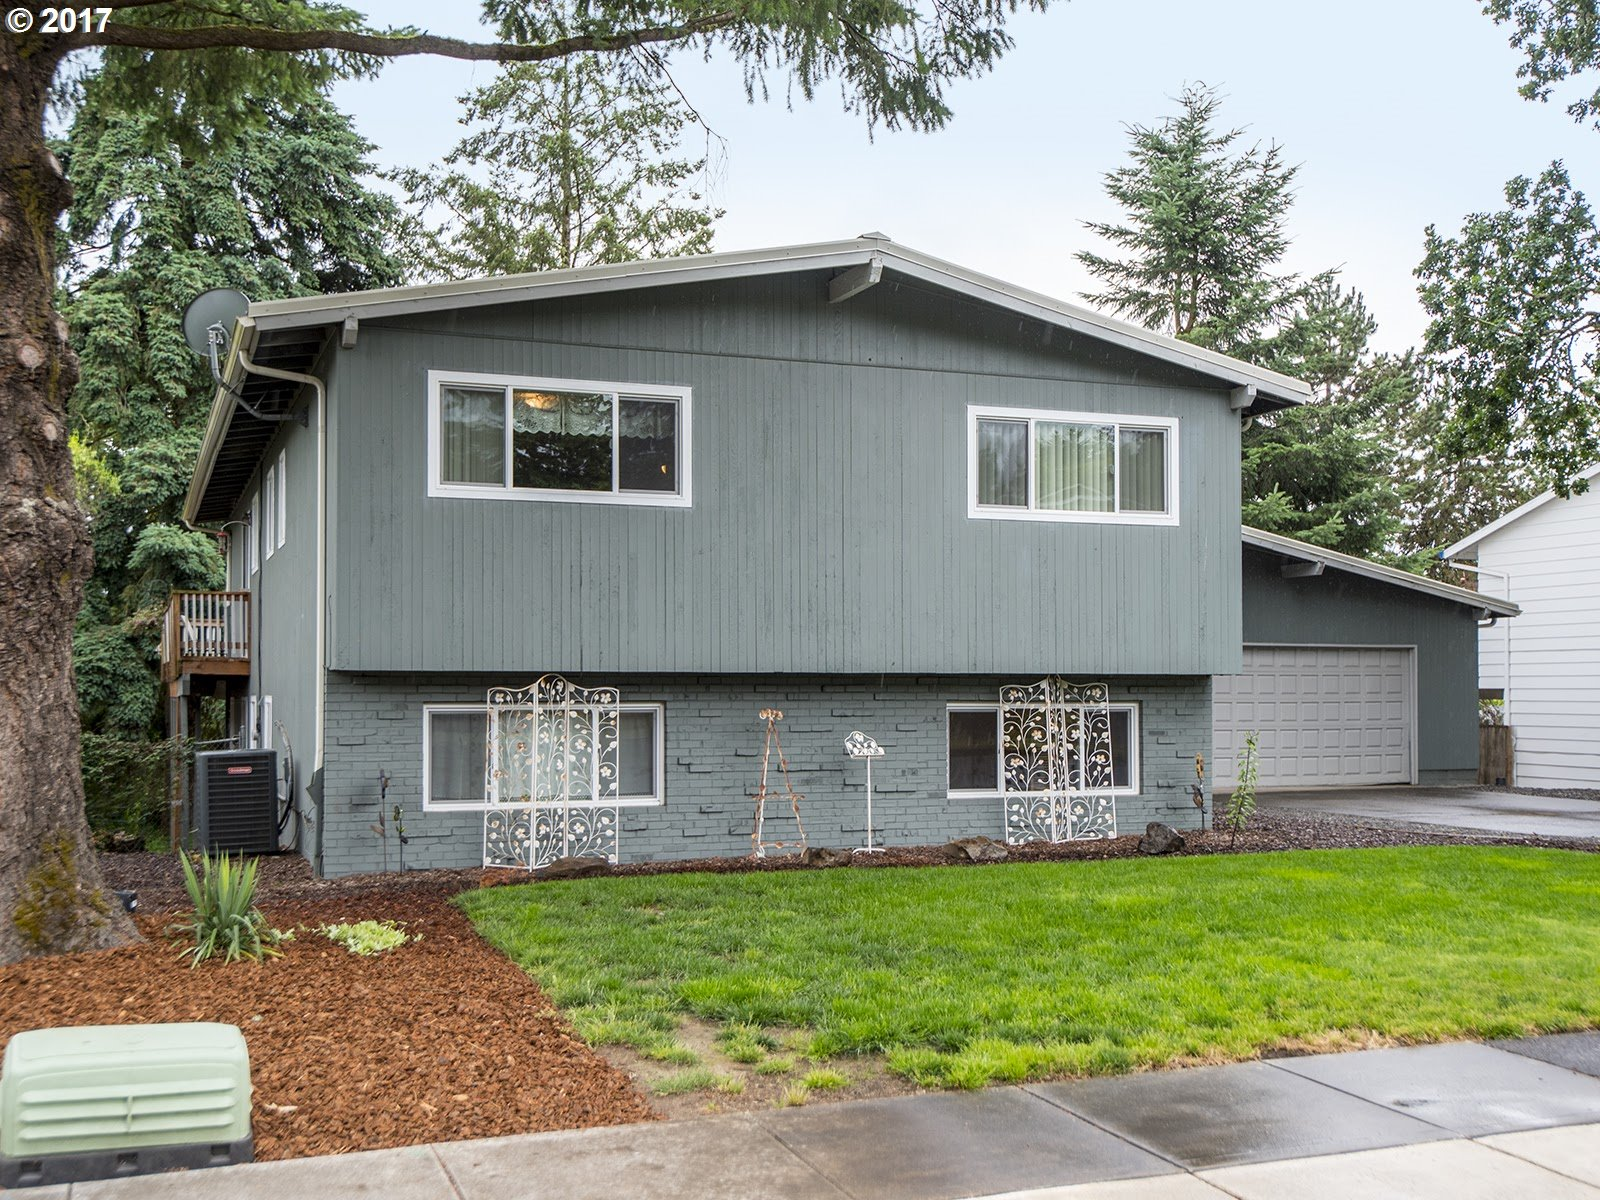 17420 CROWNVIEW DR Gladstone, OR 97027 - MLS #: 17515806